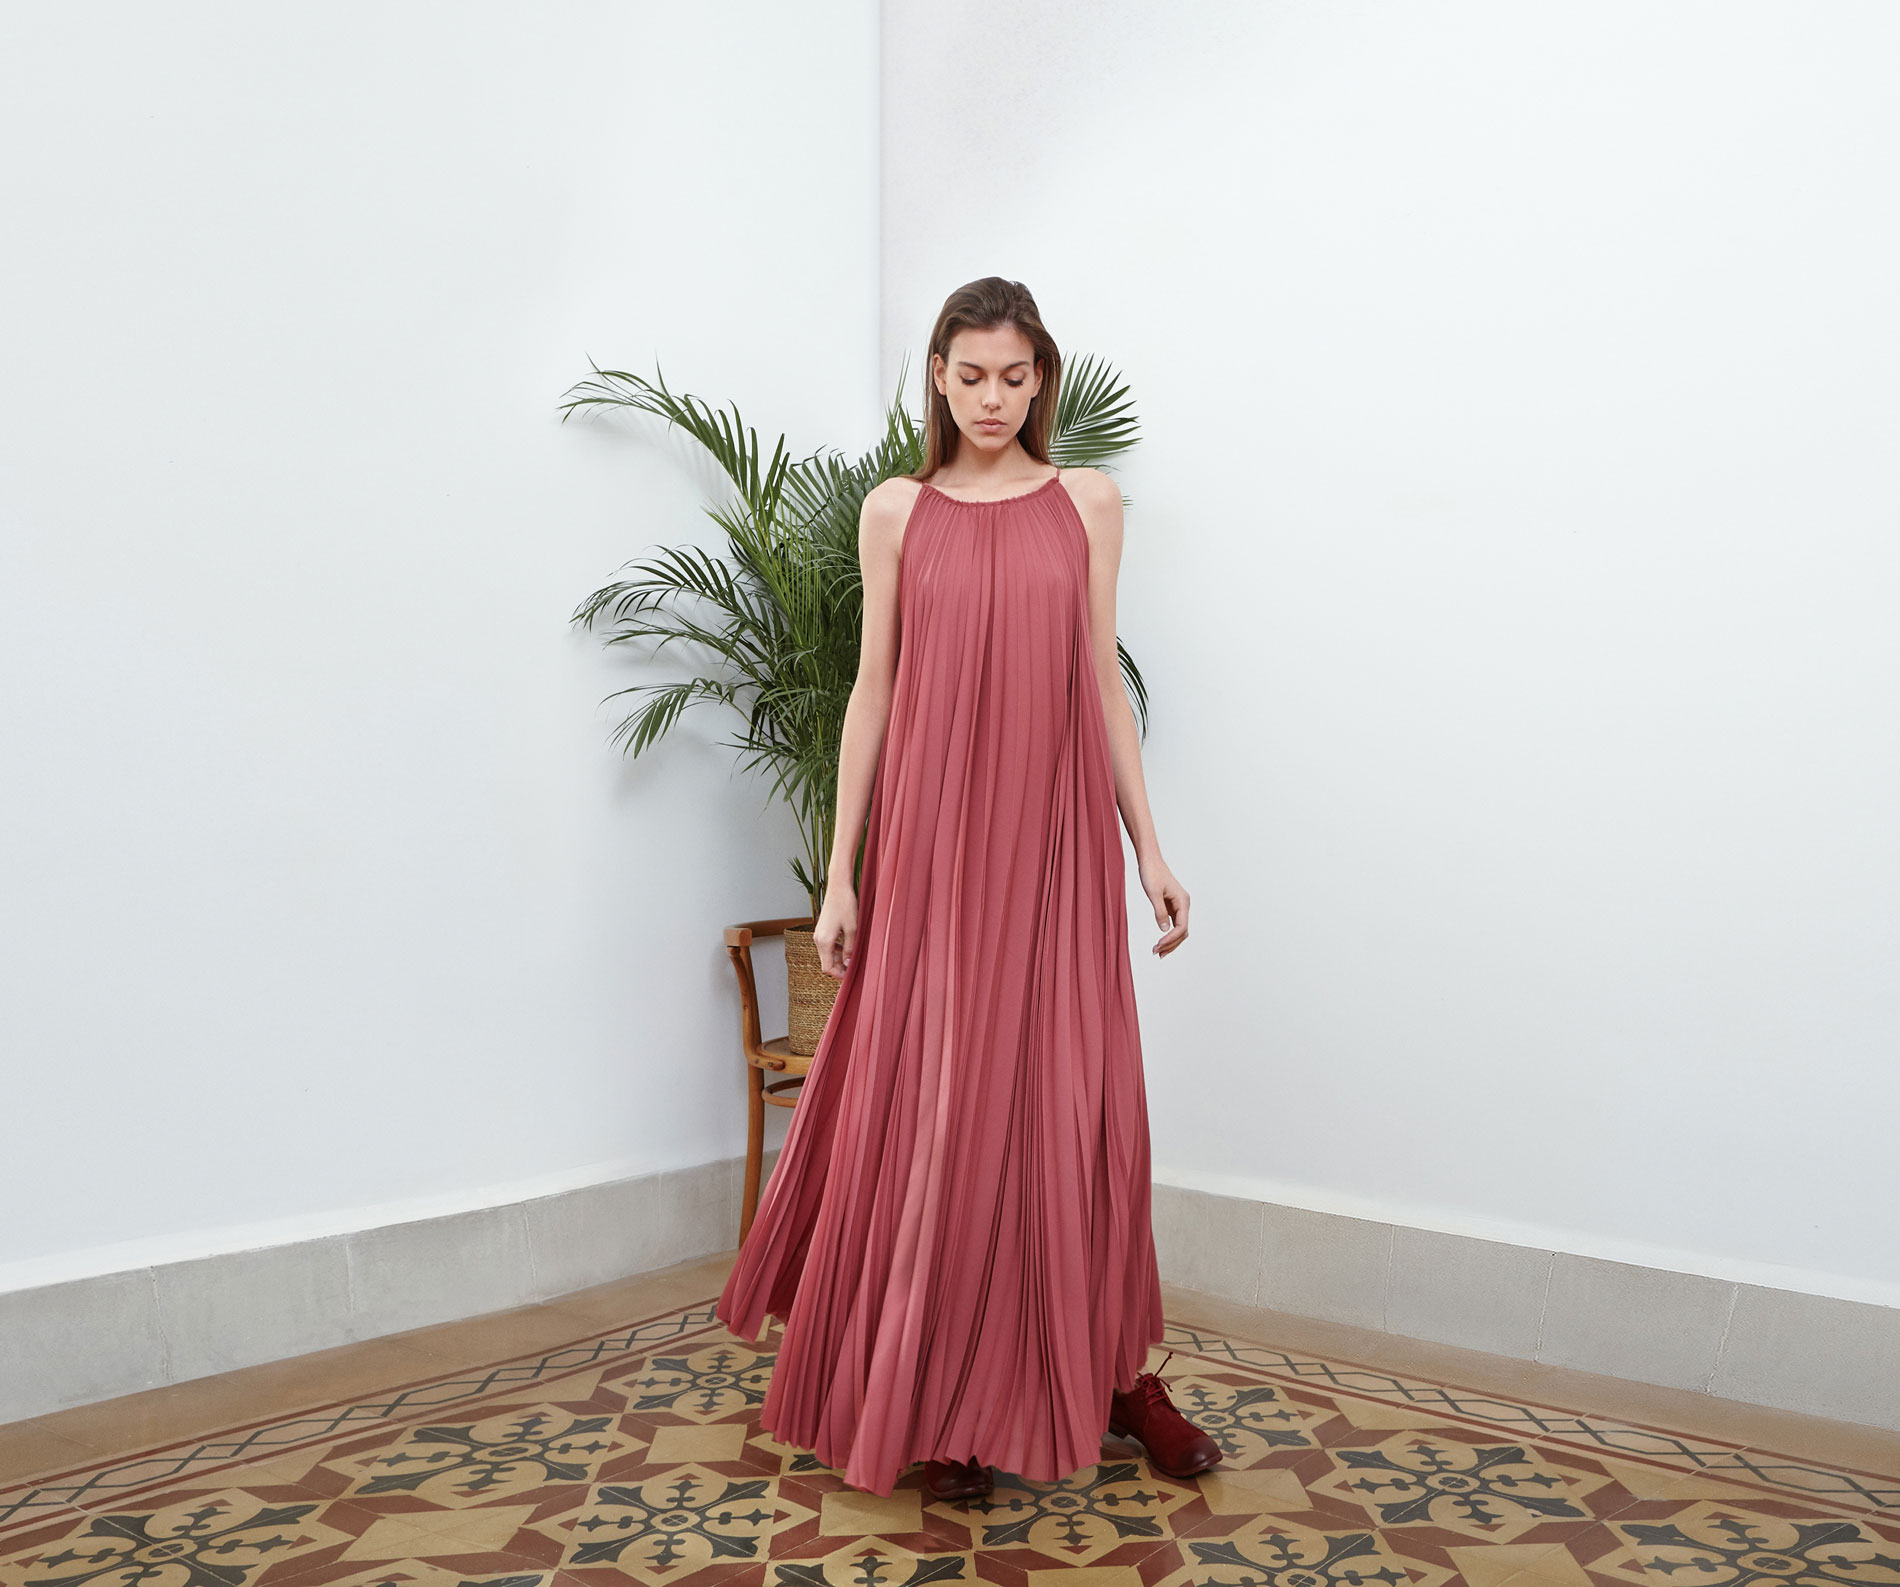 Lara Khoury | Eudemonia Spring 2019 | look 16-1 | Sleeveless Pink Sunray Pleated Dress.jpg